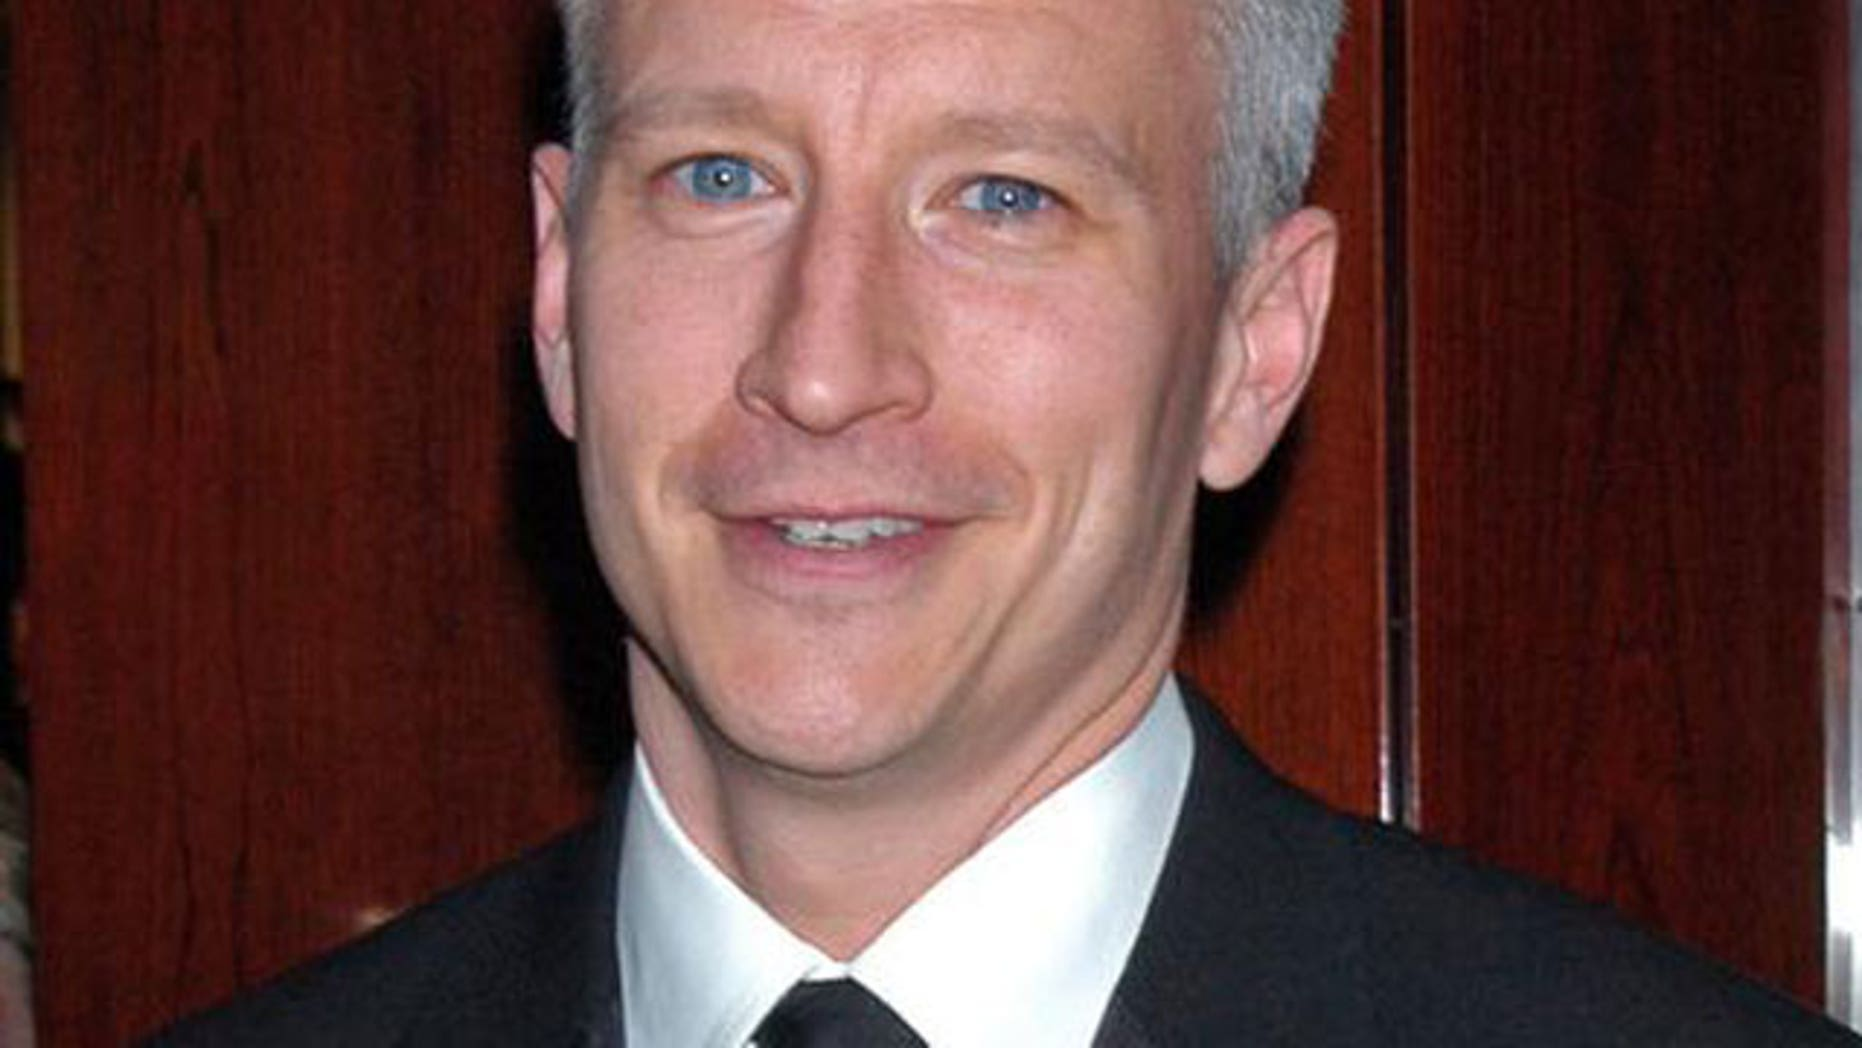 Anderson Cooper will host a daytime talk show beginning in 2011.